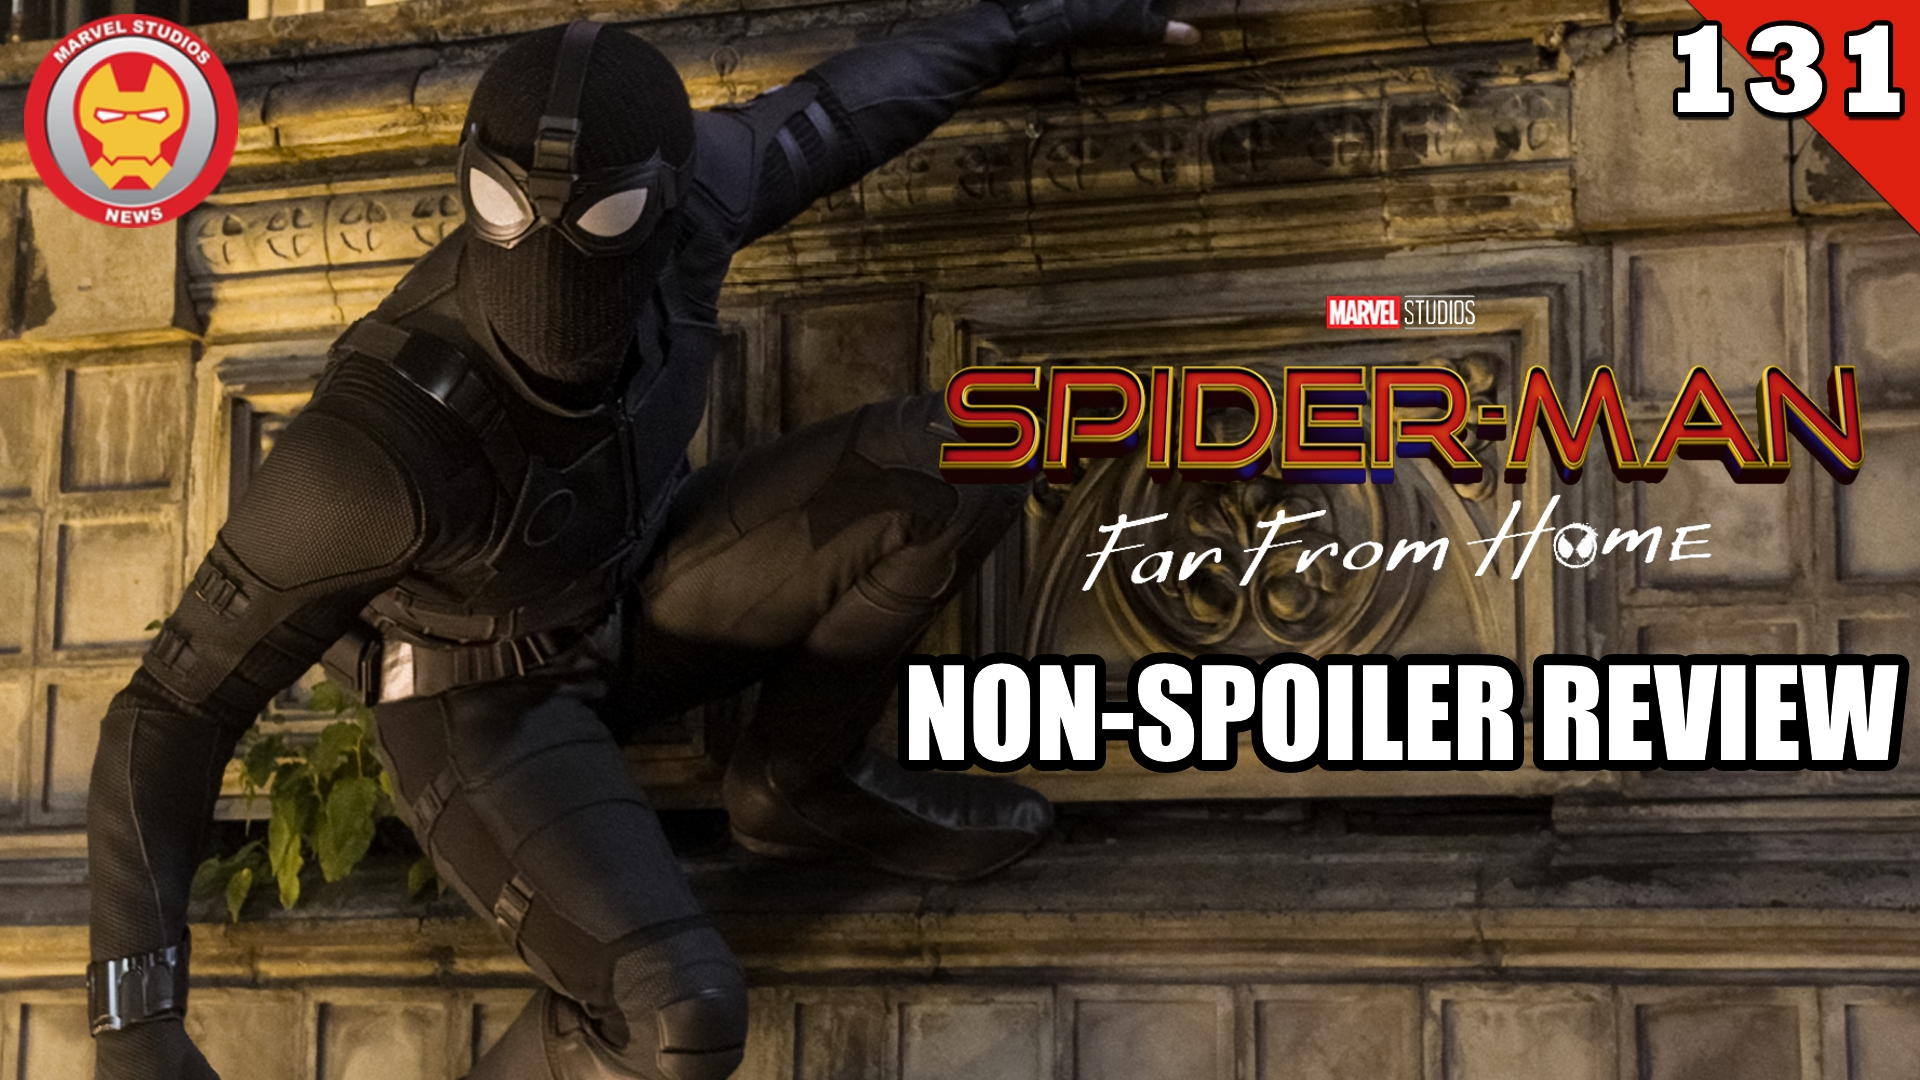 Marvel Studios News podcast #131 - 'Spider-Man: Far From Home' non